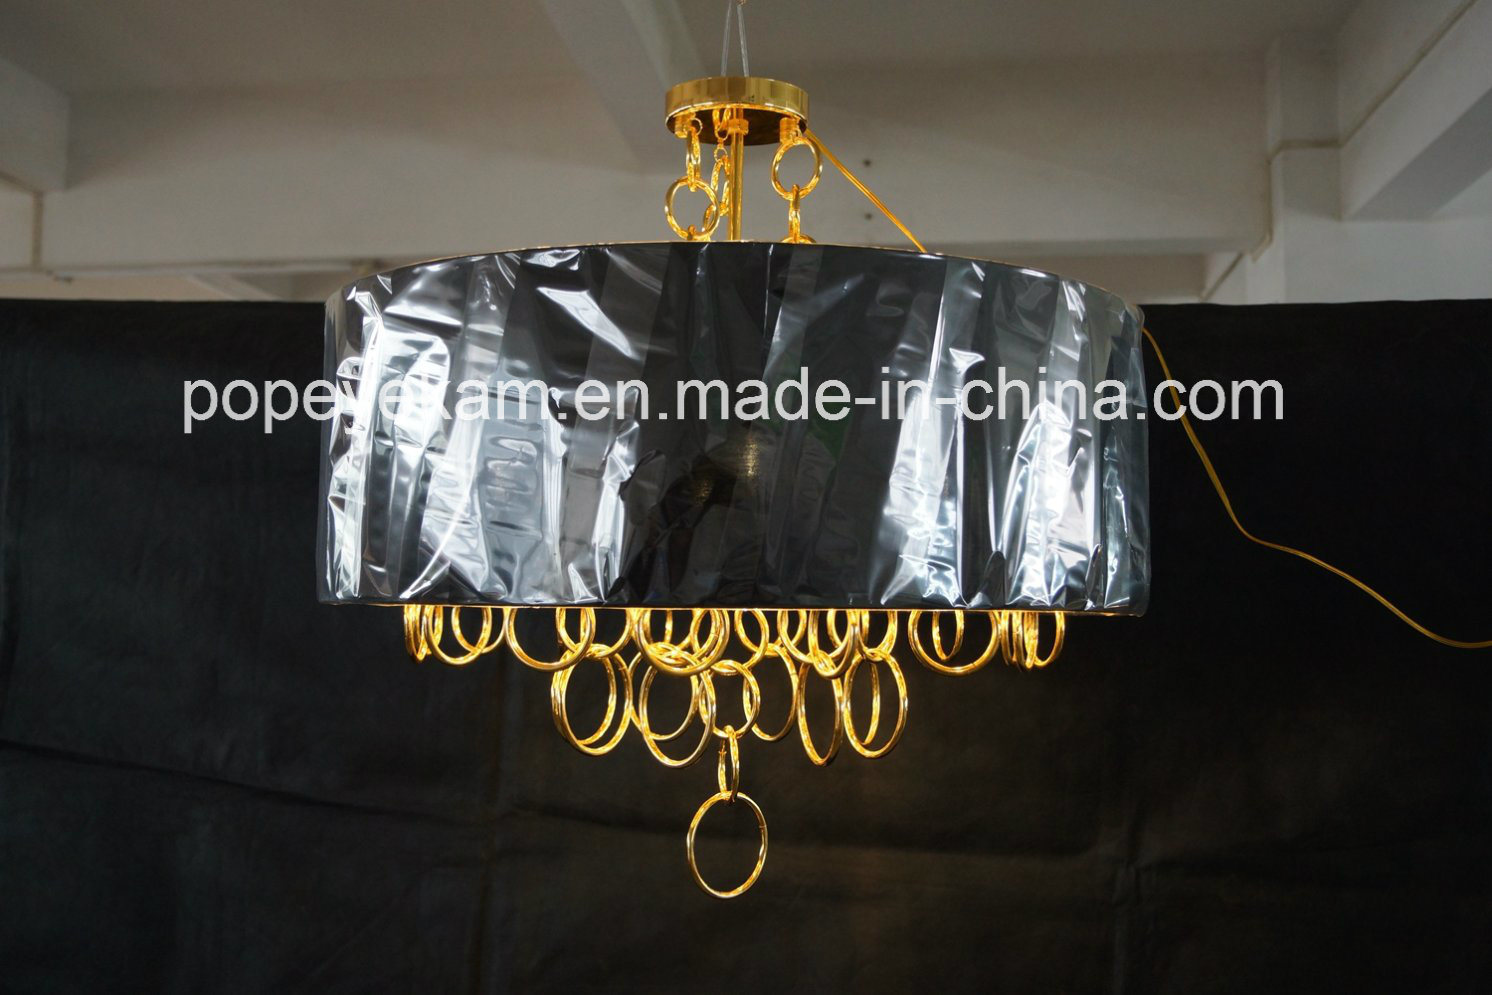 Decorative Iron Gold Plated Chandelier Pendant Lighting (ka9022)